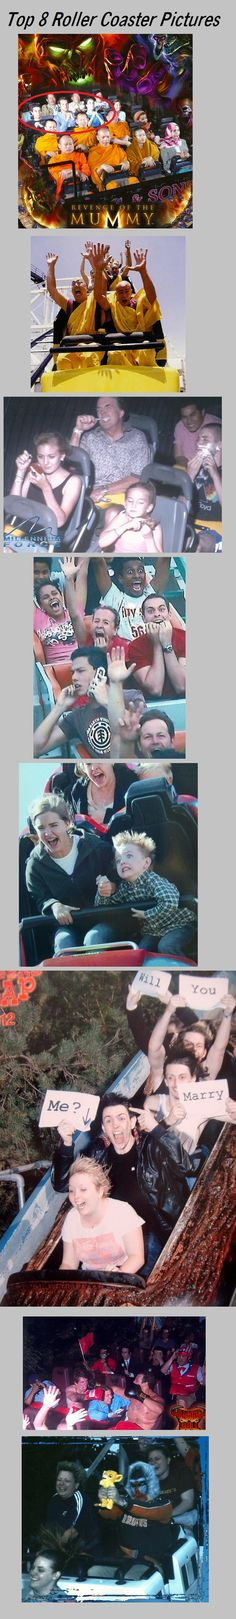 my brother and I use to do this at Kings Island, but nothing this funny and good, lol